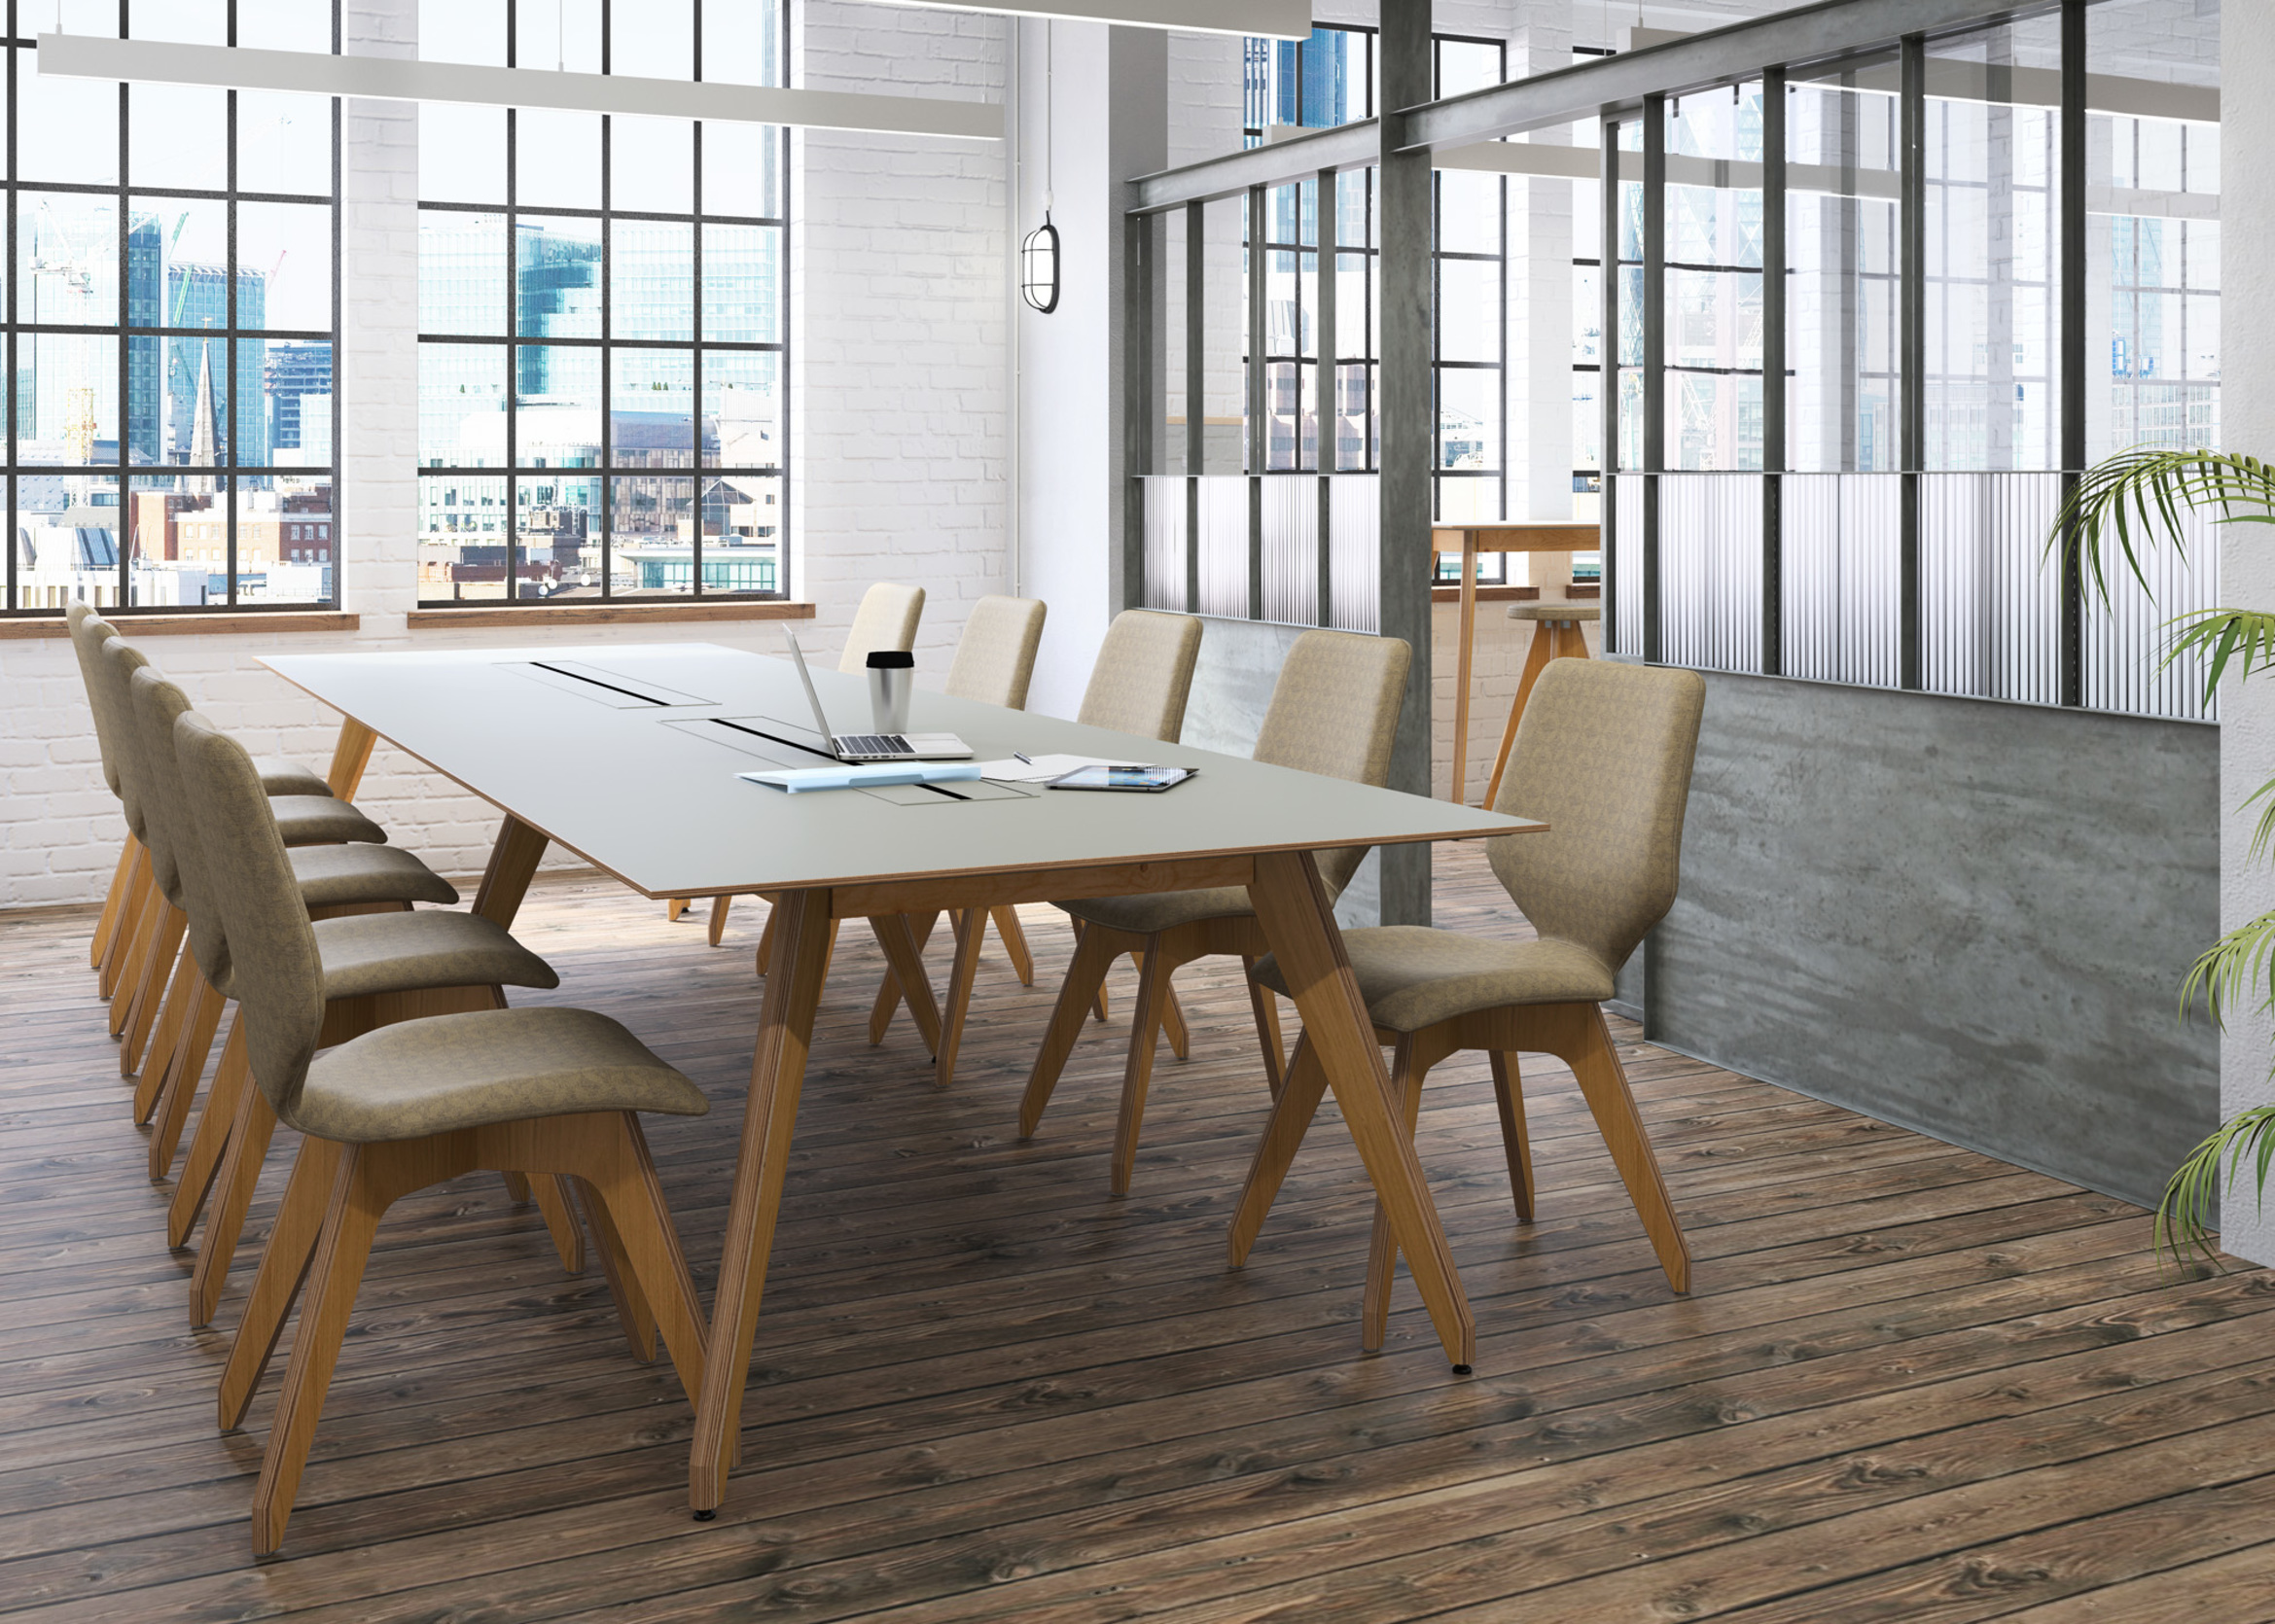 Ligni Conference Table